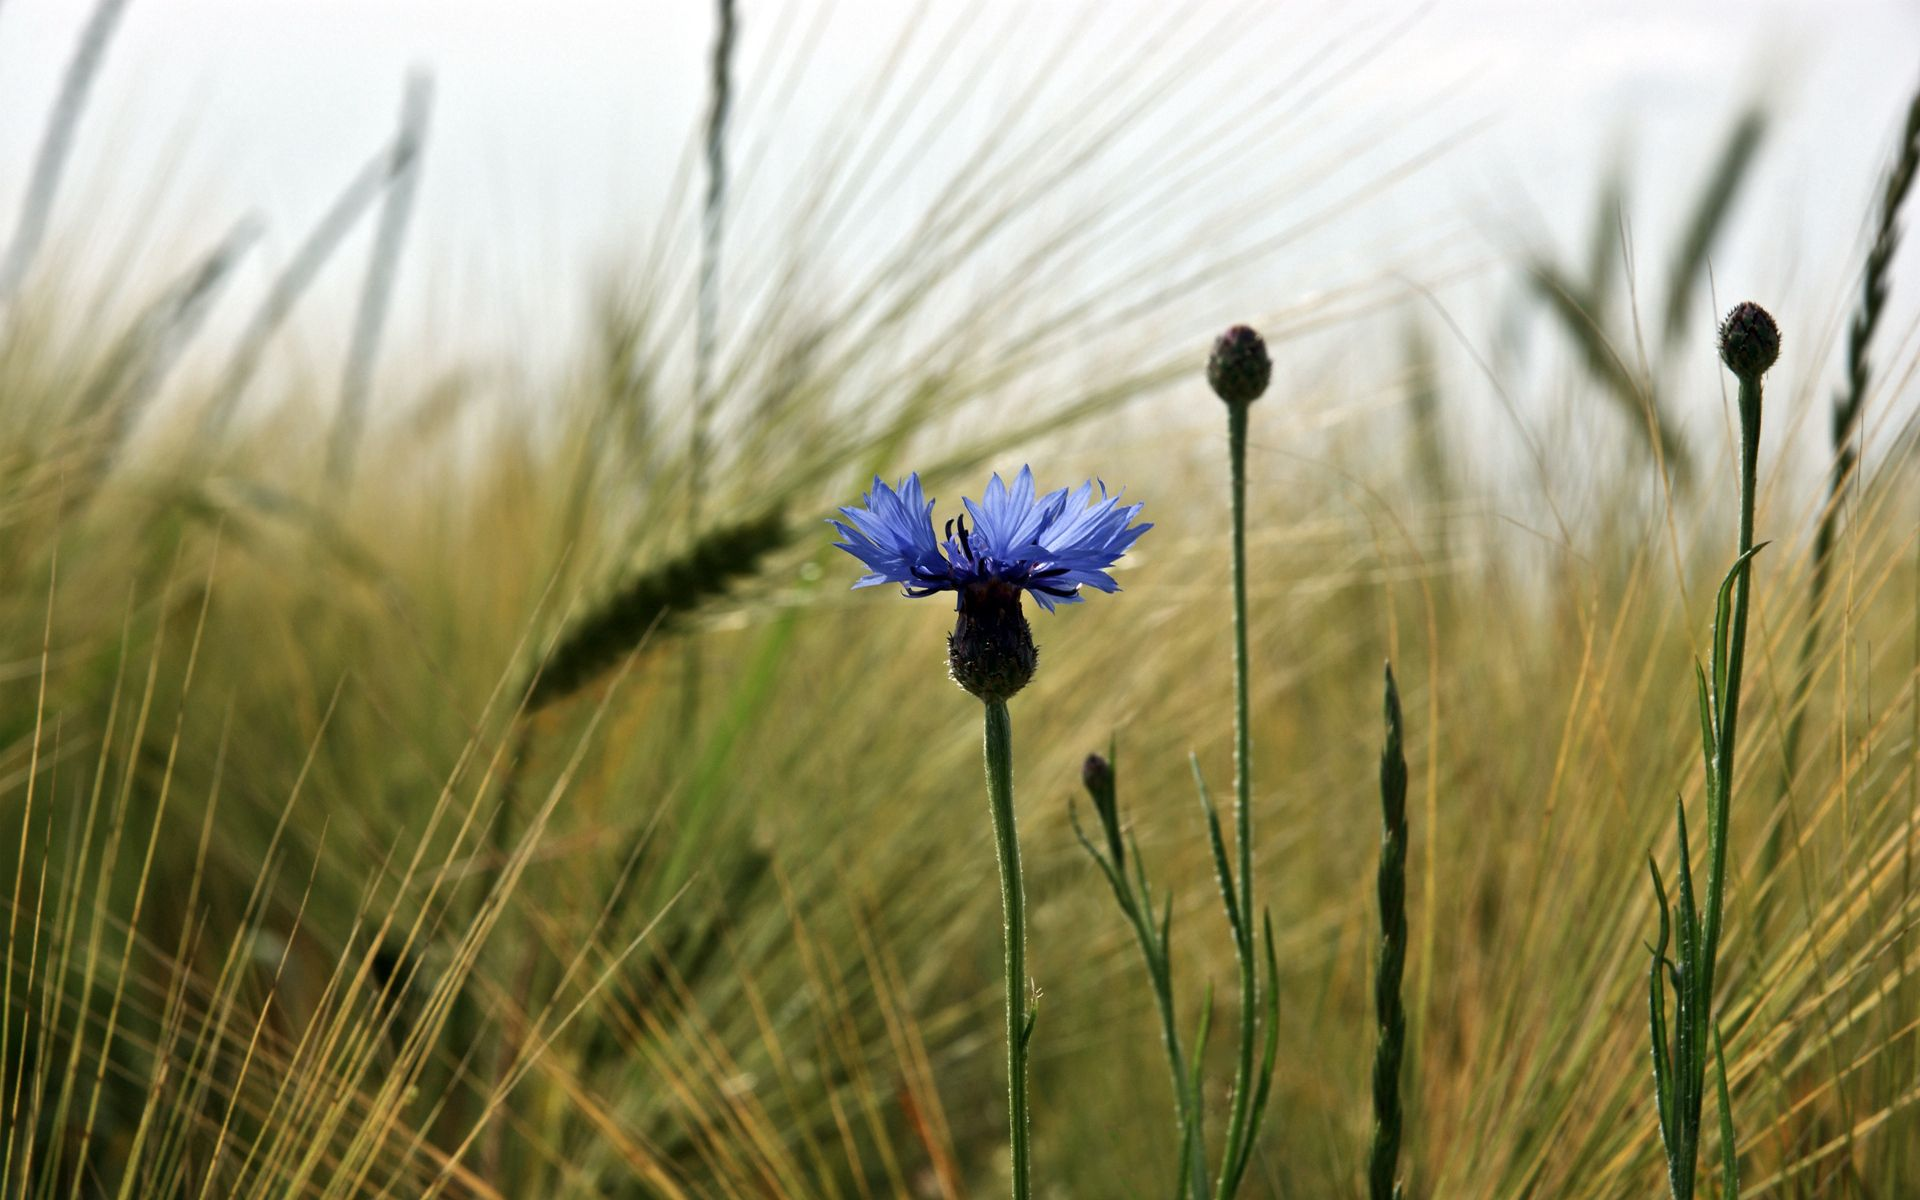 136136 download wallpaper Flowers, Cornflower, Flower, Field, Ears, Spikes, Nature screensavers and pictures for free